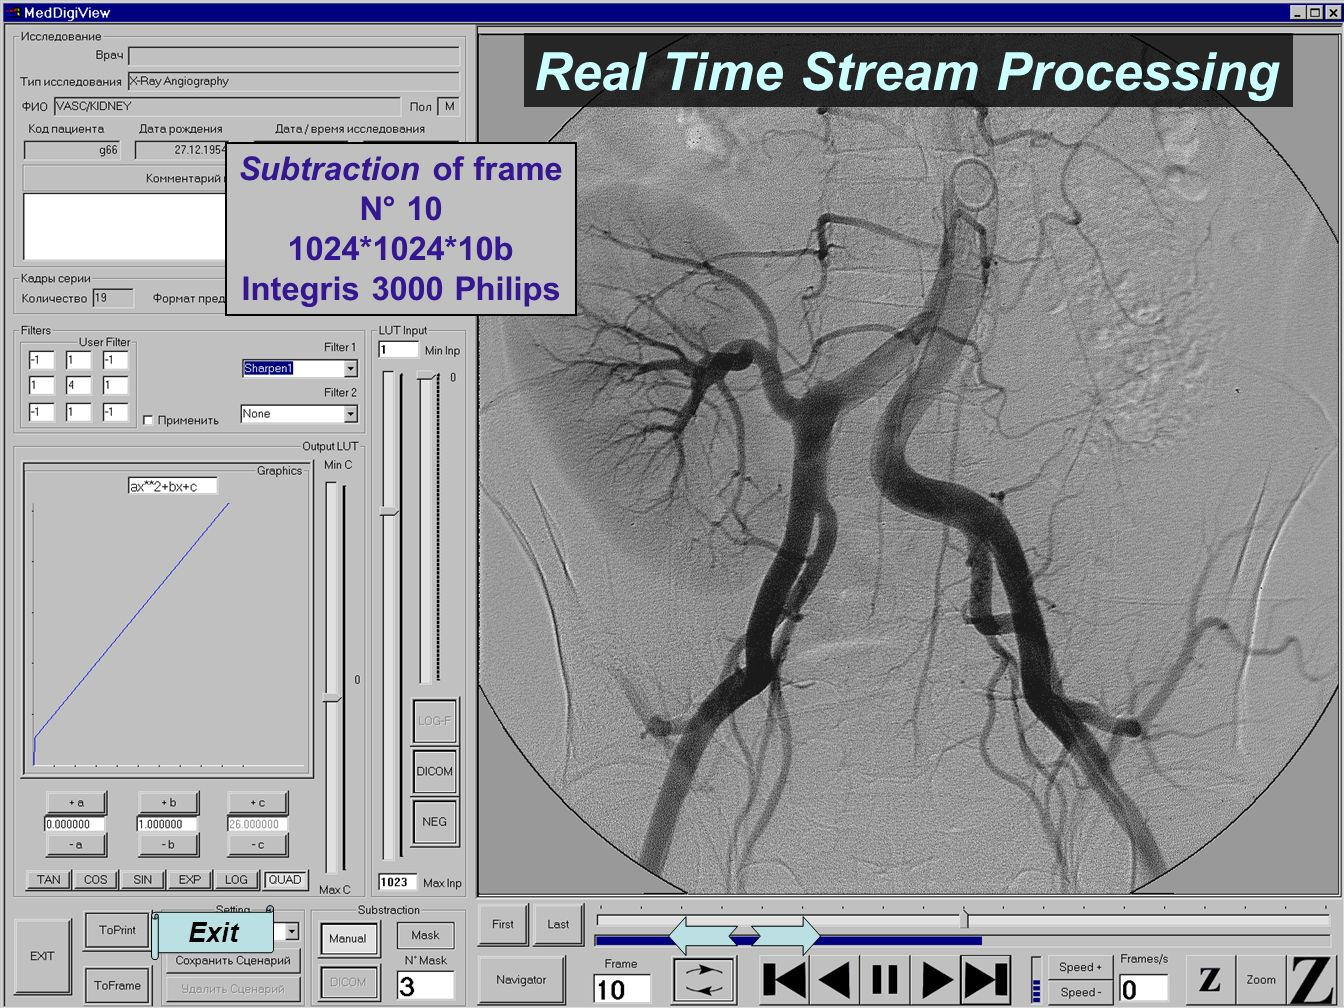 Exit Subtraction of frame N° 10 1024*1024*10b Integris 3000 Philips Real Time Stream Processing